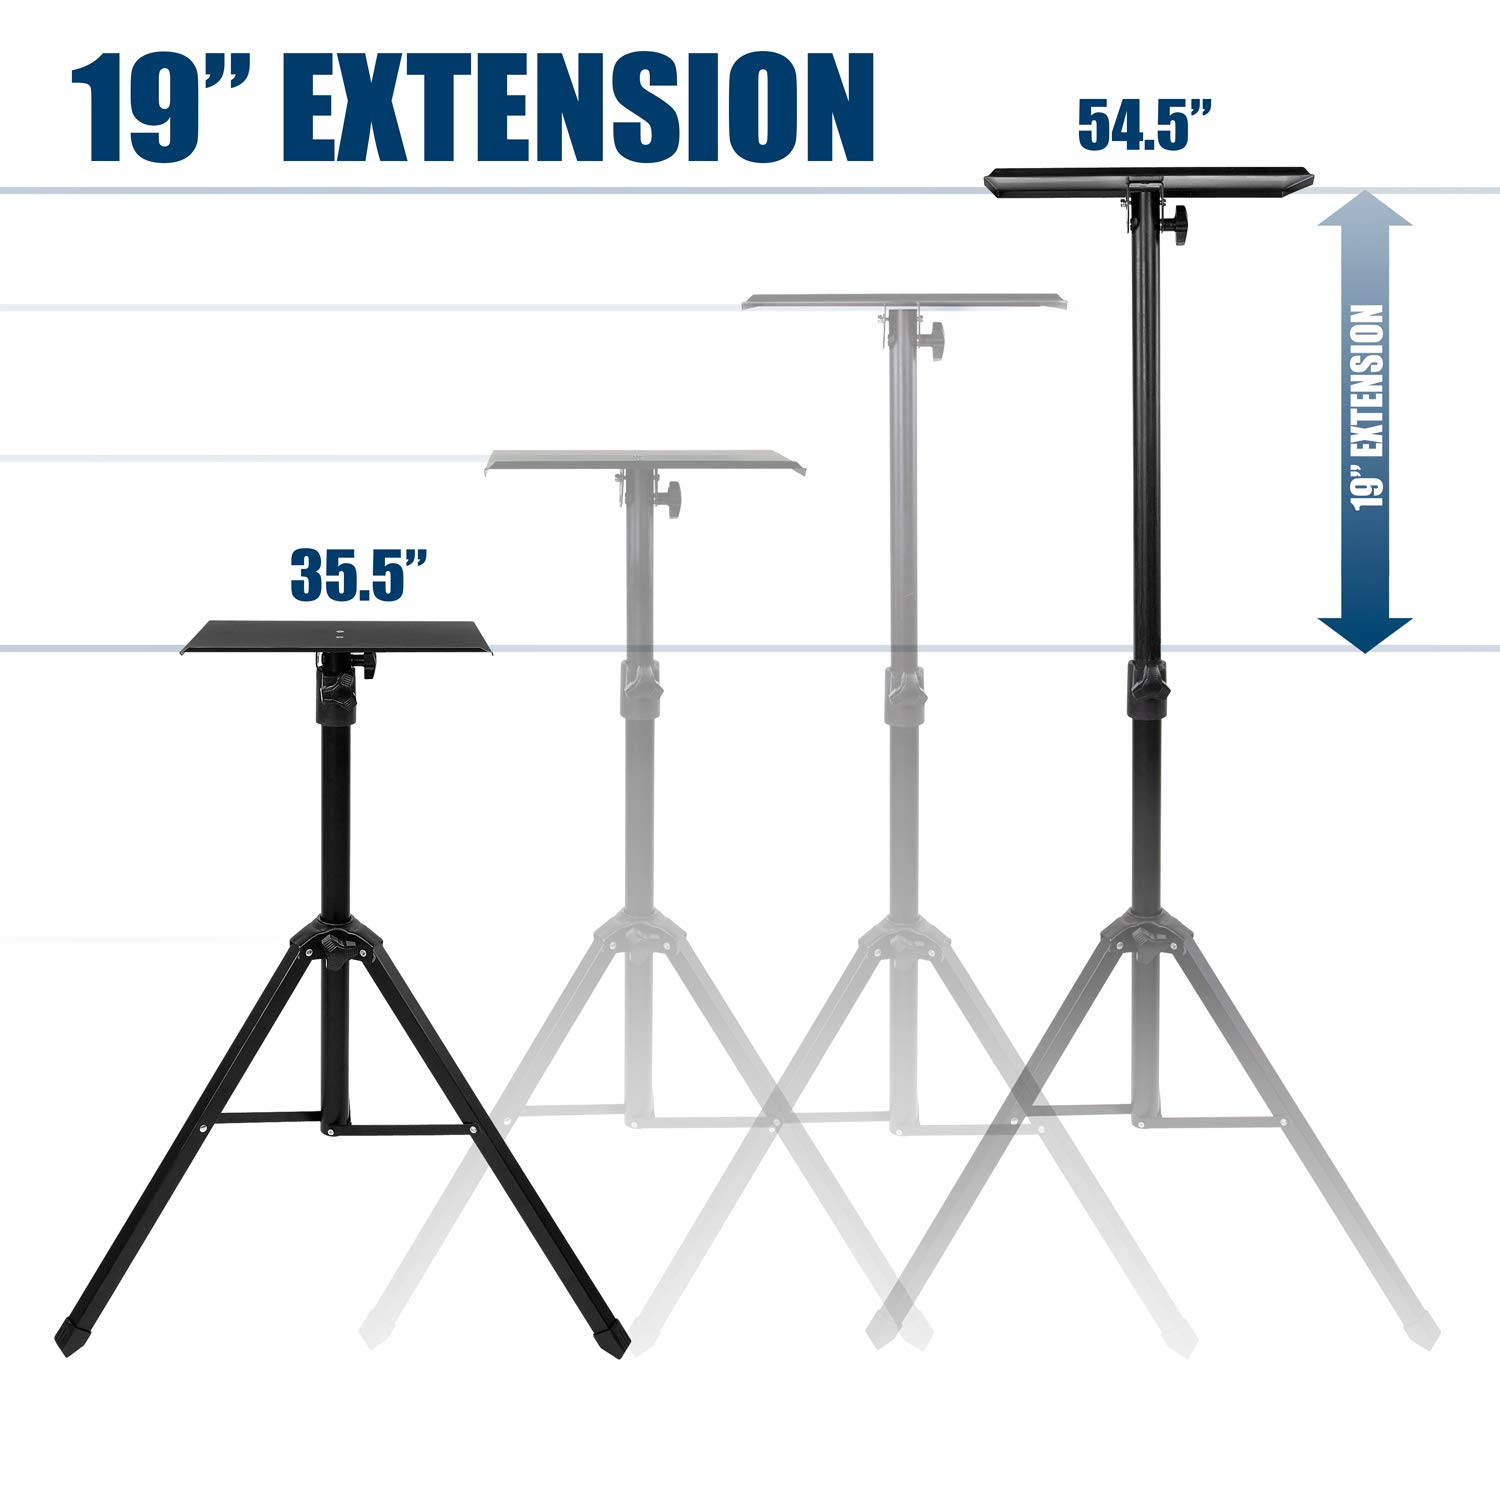 Mount-It! Tripod Projector Stand, Adjustable DJ Laptop Stand with Height and Tilt Adjustment, Portable Laptop Projector Table with Steel Tripod Base and Tray, Black by Mount-It! (Image #5)